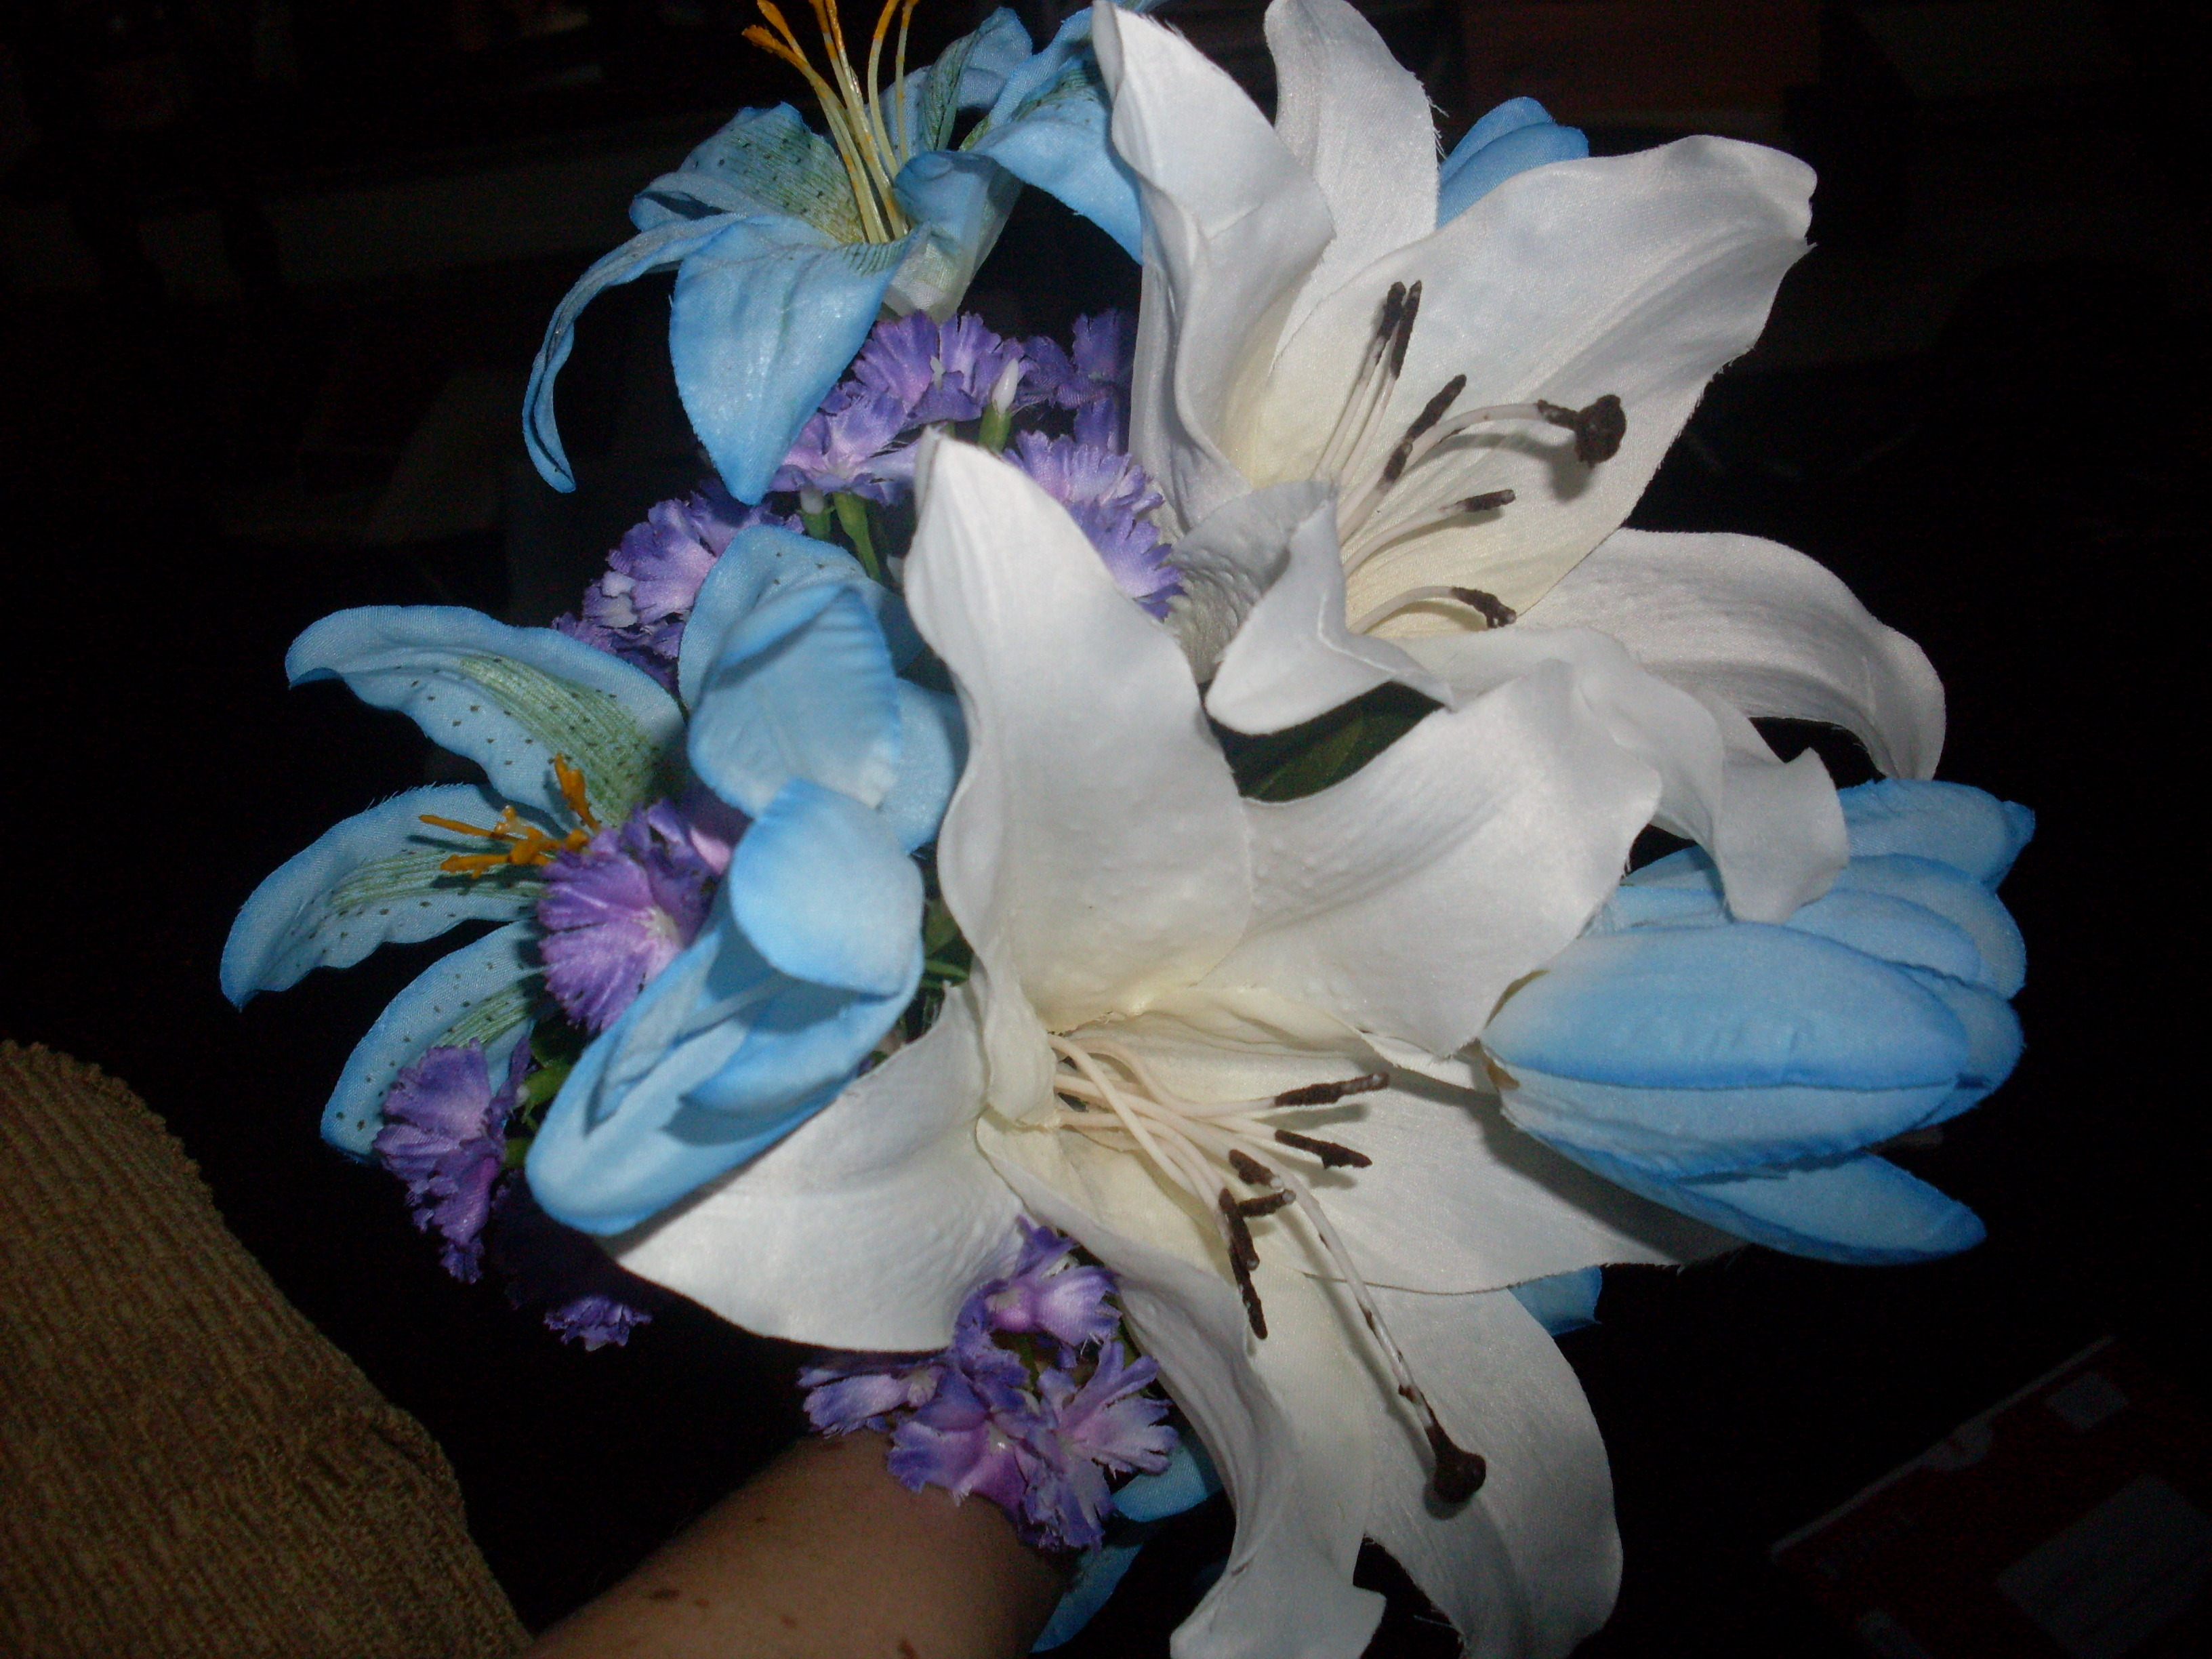 Flowers & Decor, white, purple, blue, Flowers, Lilies, Bouquets, Violets